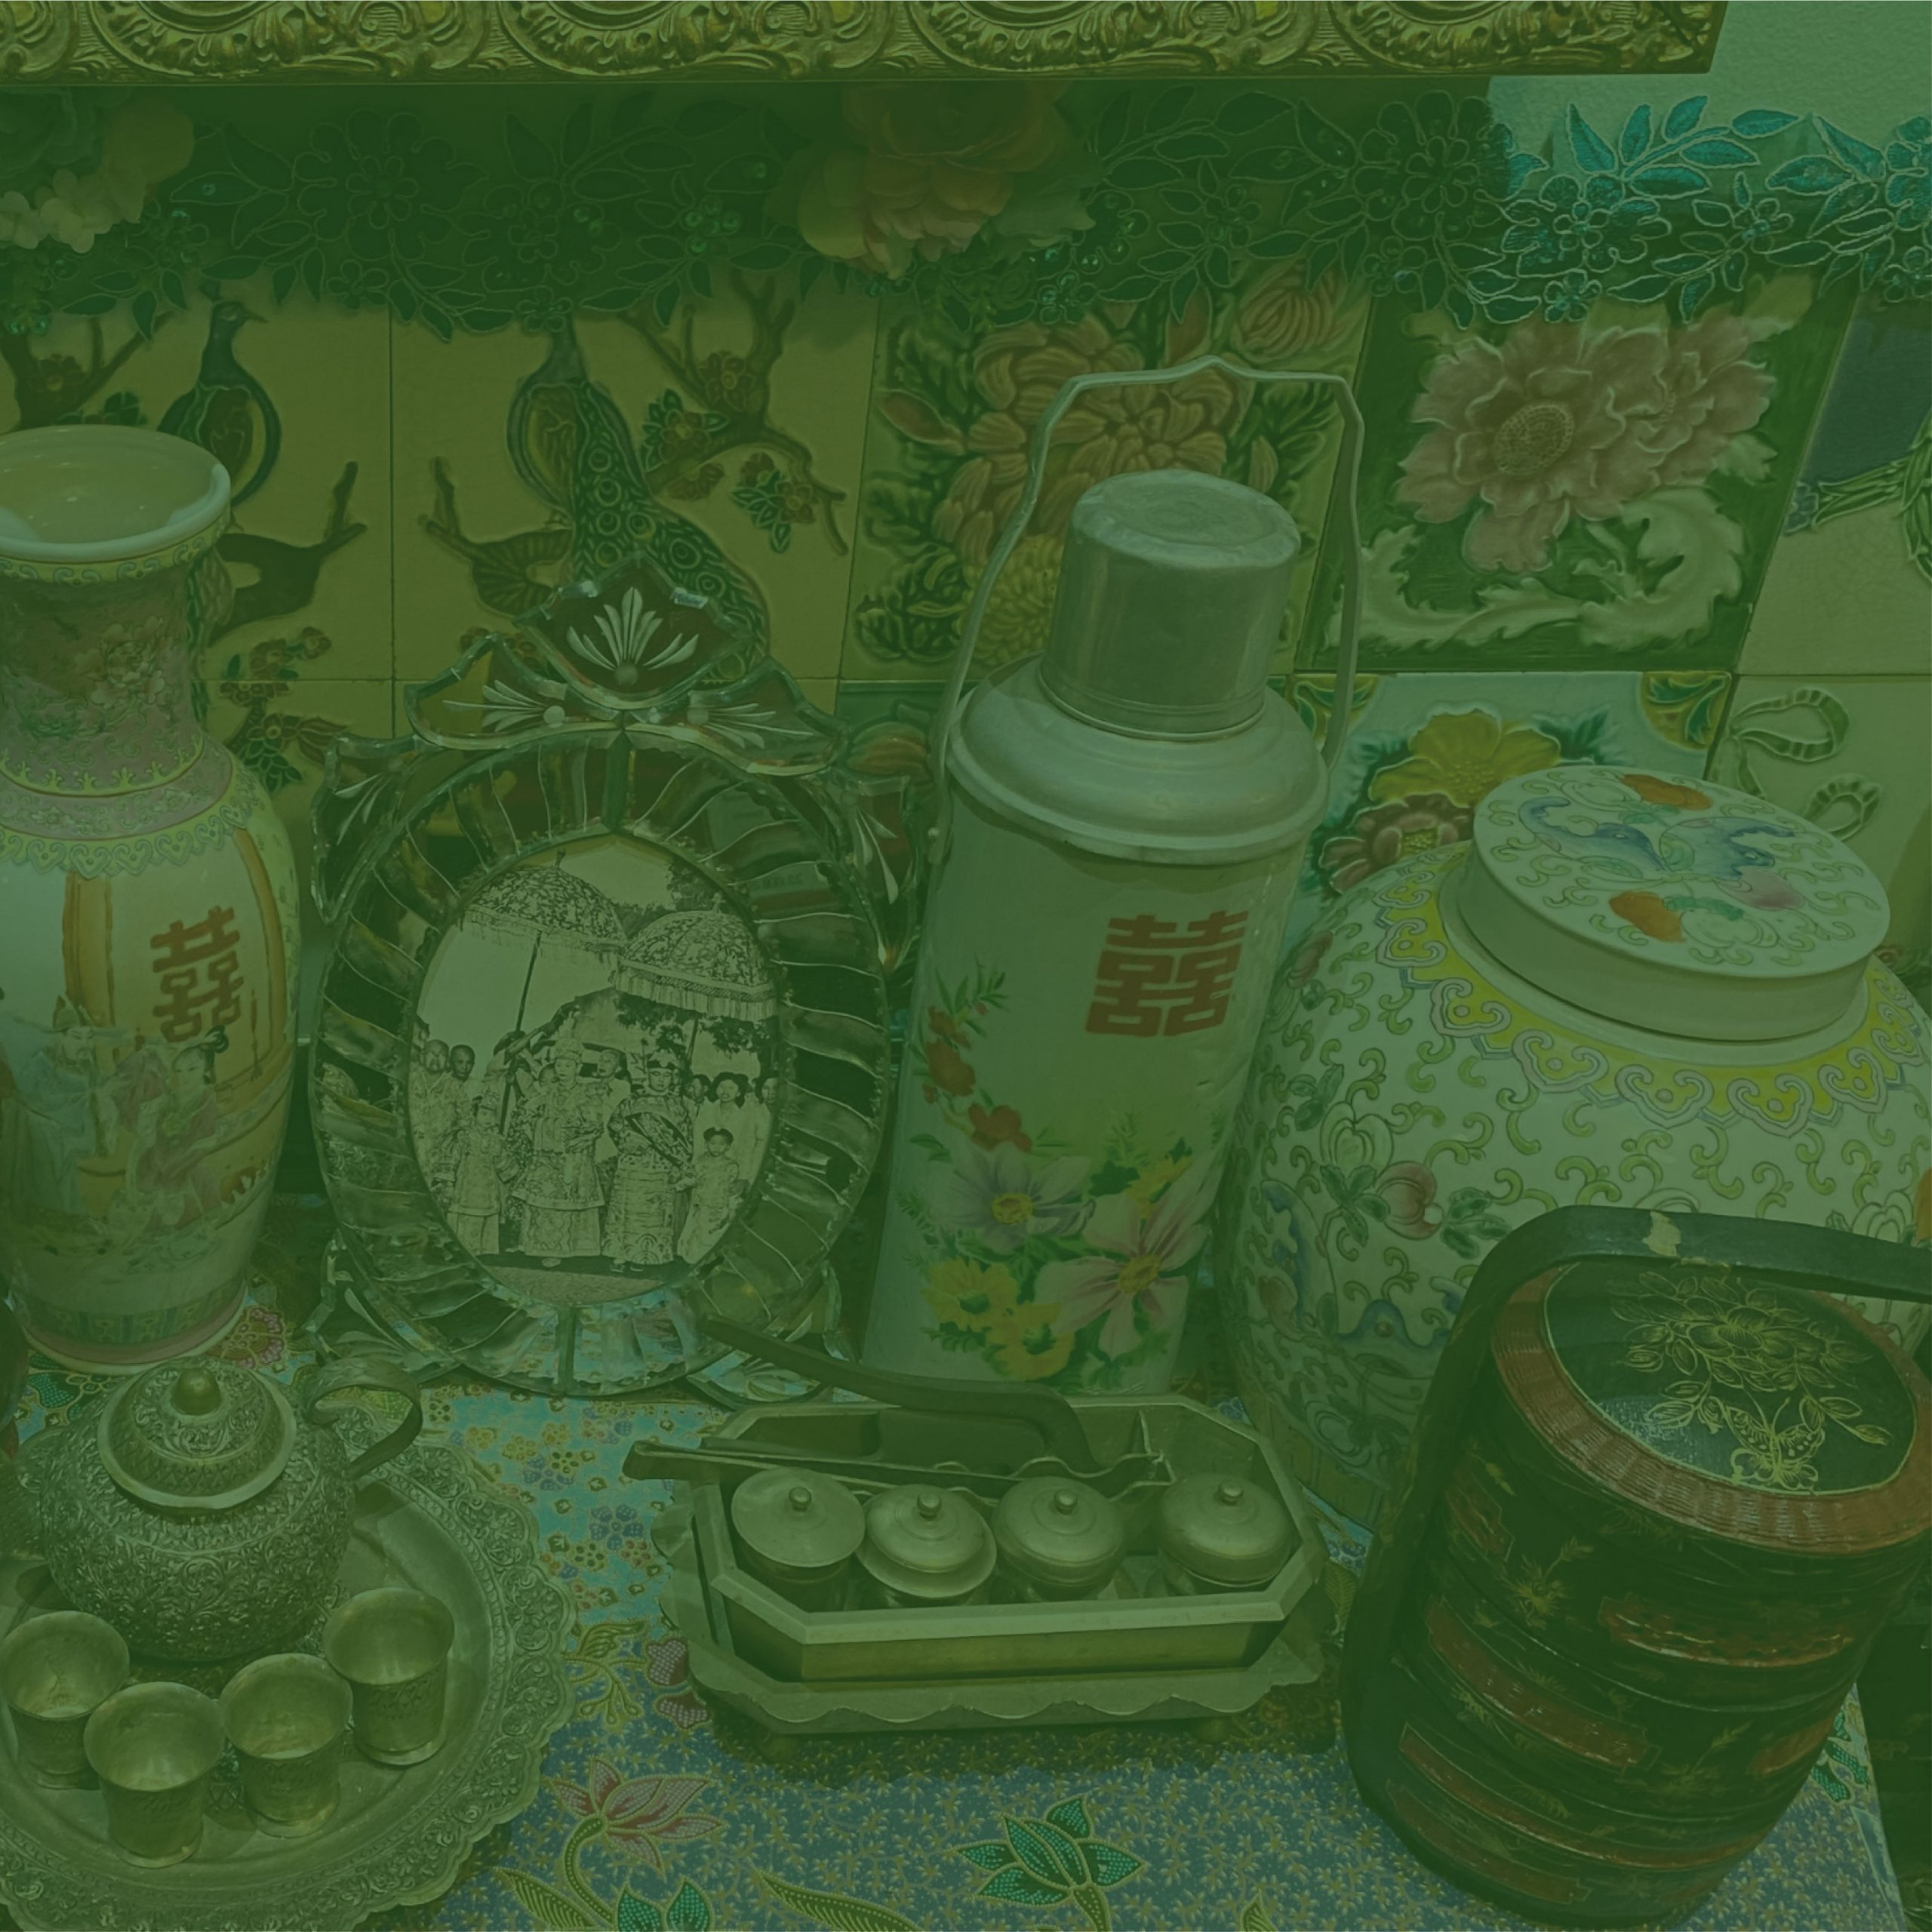 Deluxe Peranakan Tour with Full Course Peranakan Meal (Senior-Friendly)